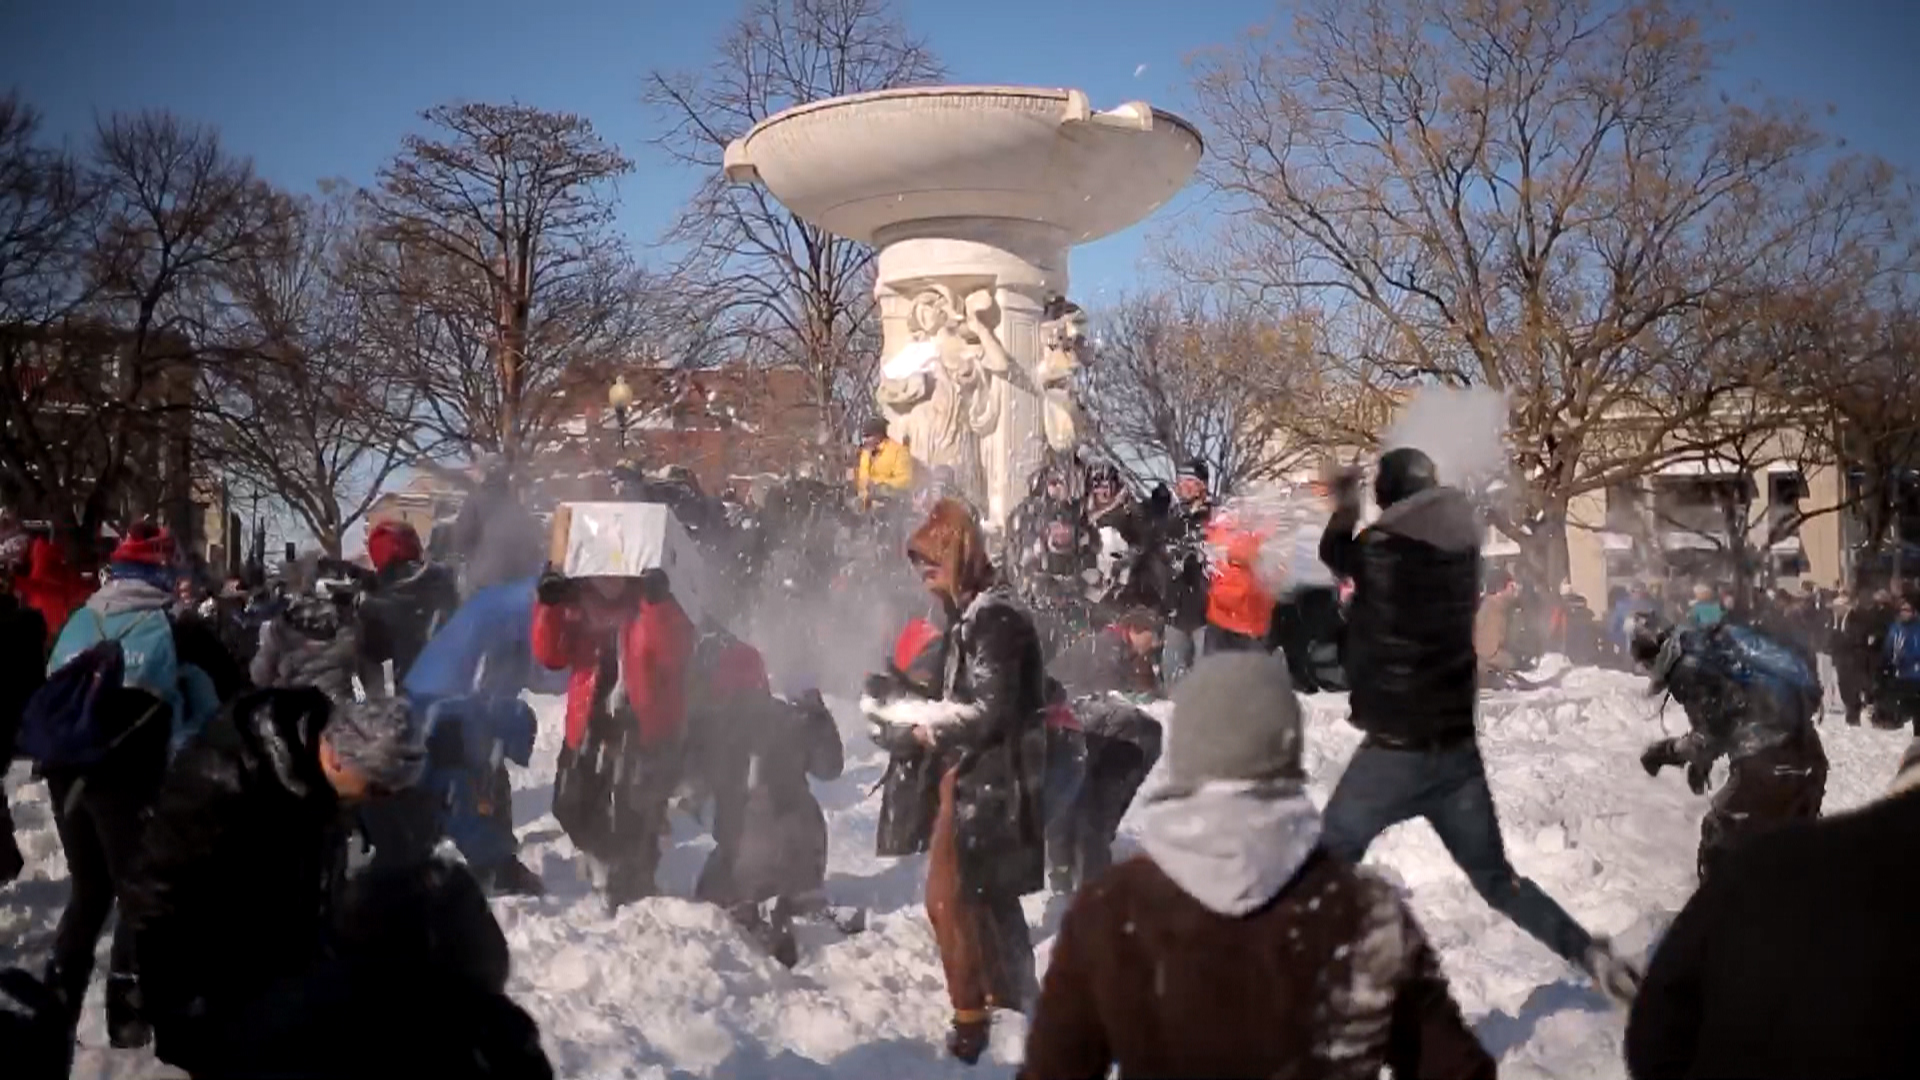 Giant Snowball Fight Erupts in Washington, D C  - NBC News